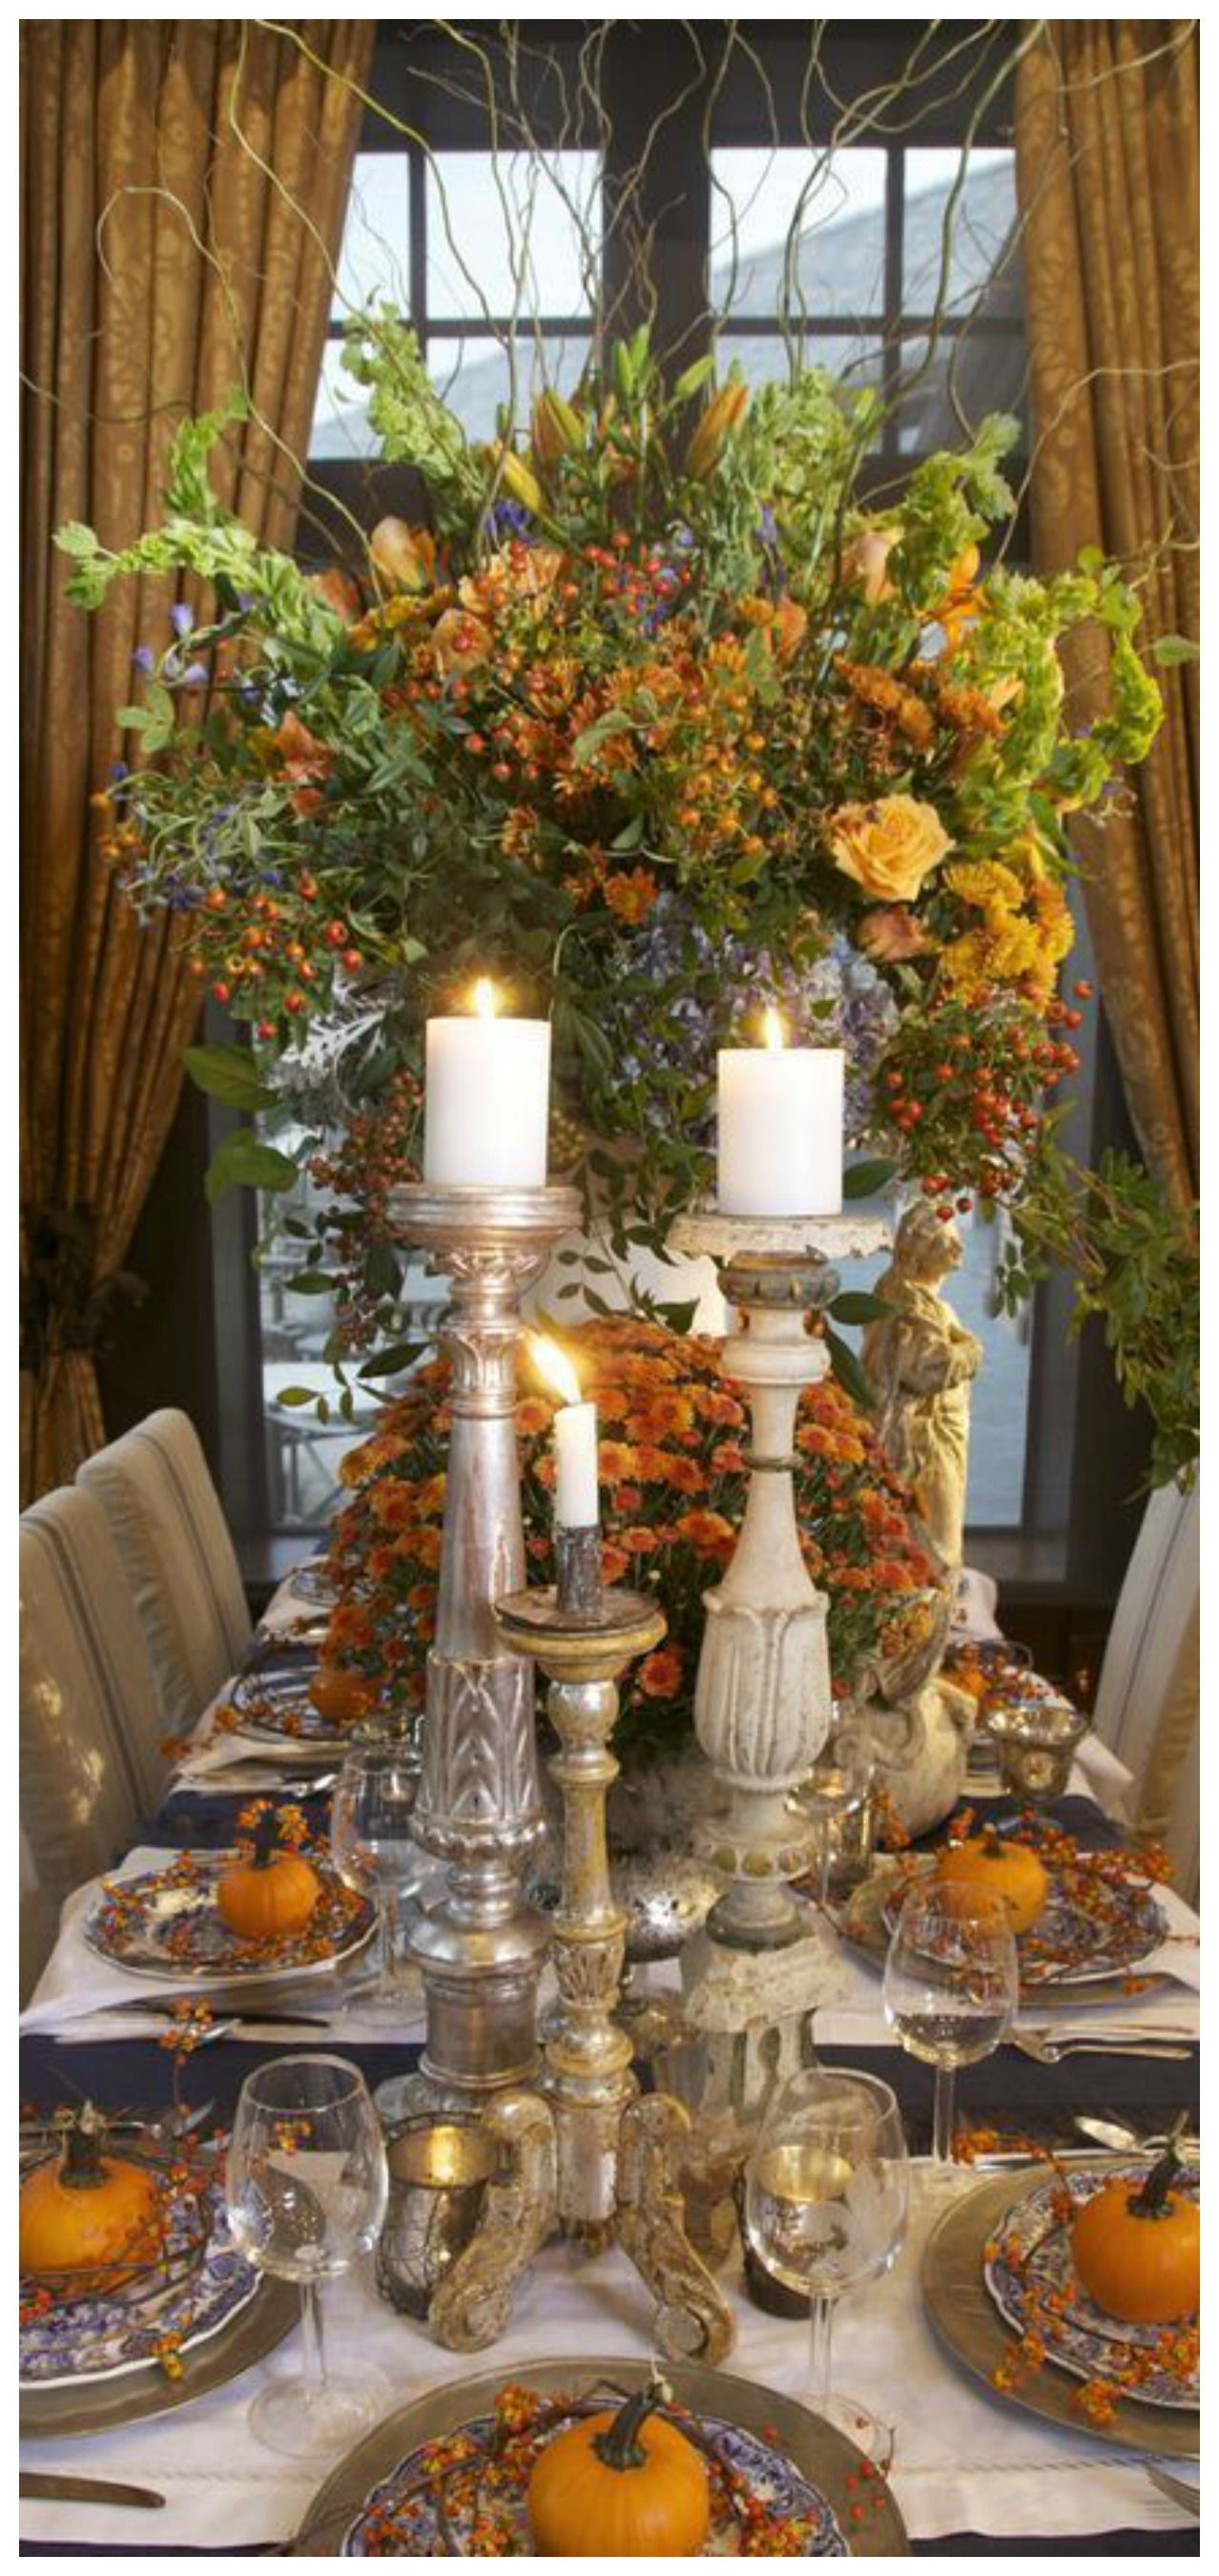 Pin by Tam's Boards ♥ on Giving Thanks Cottage Autumn